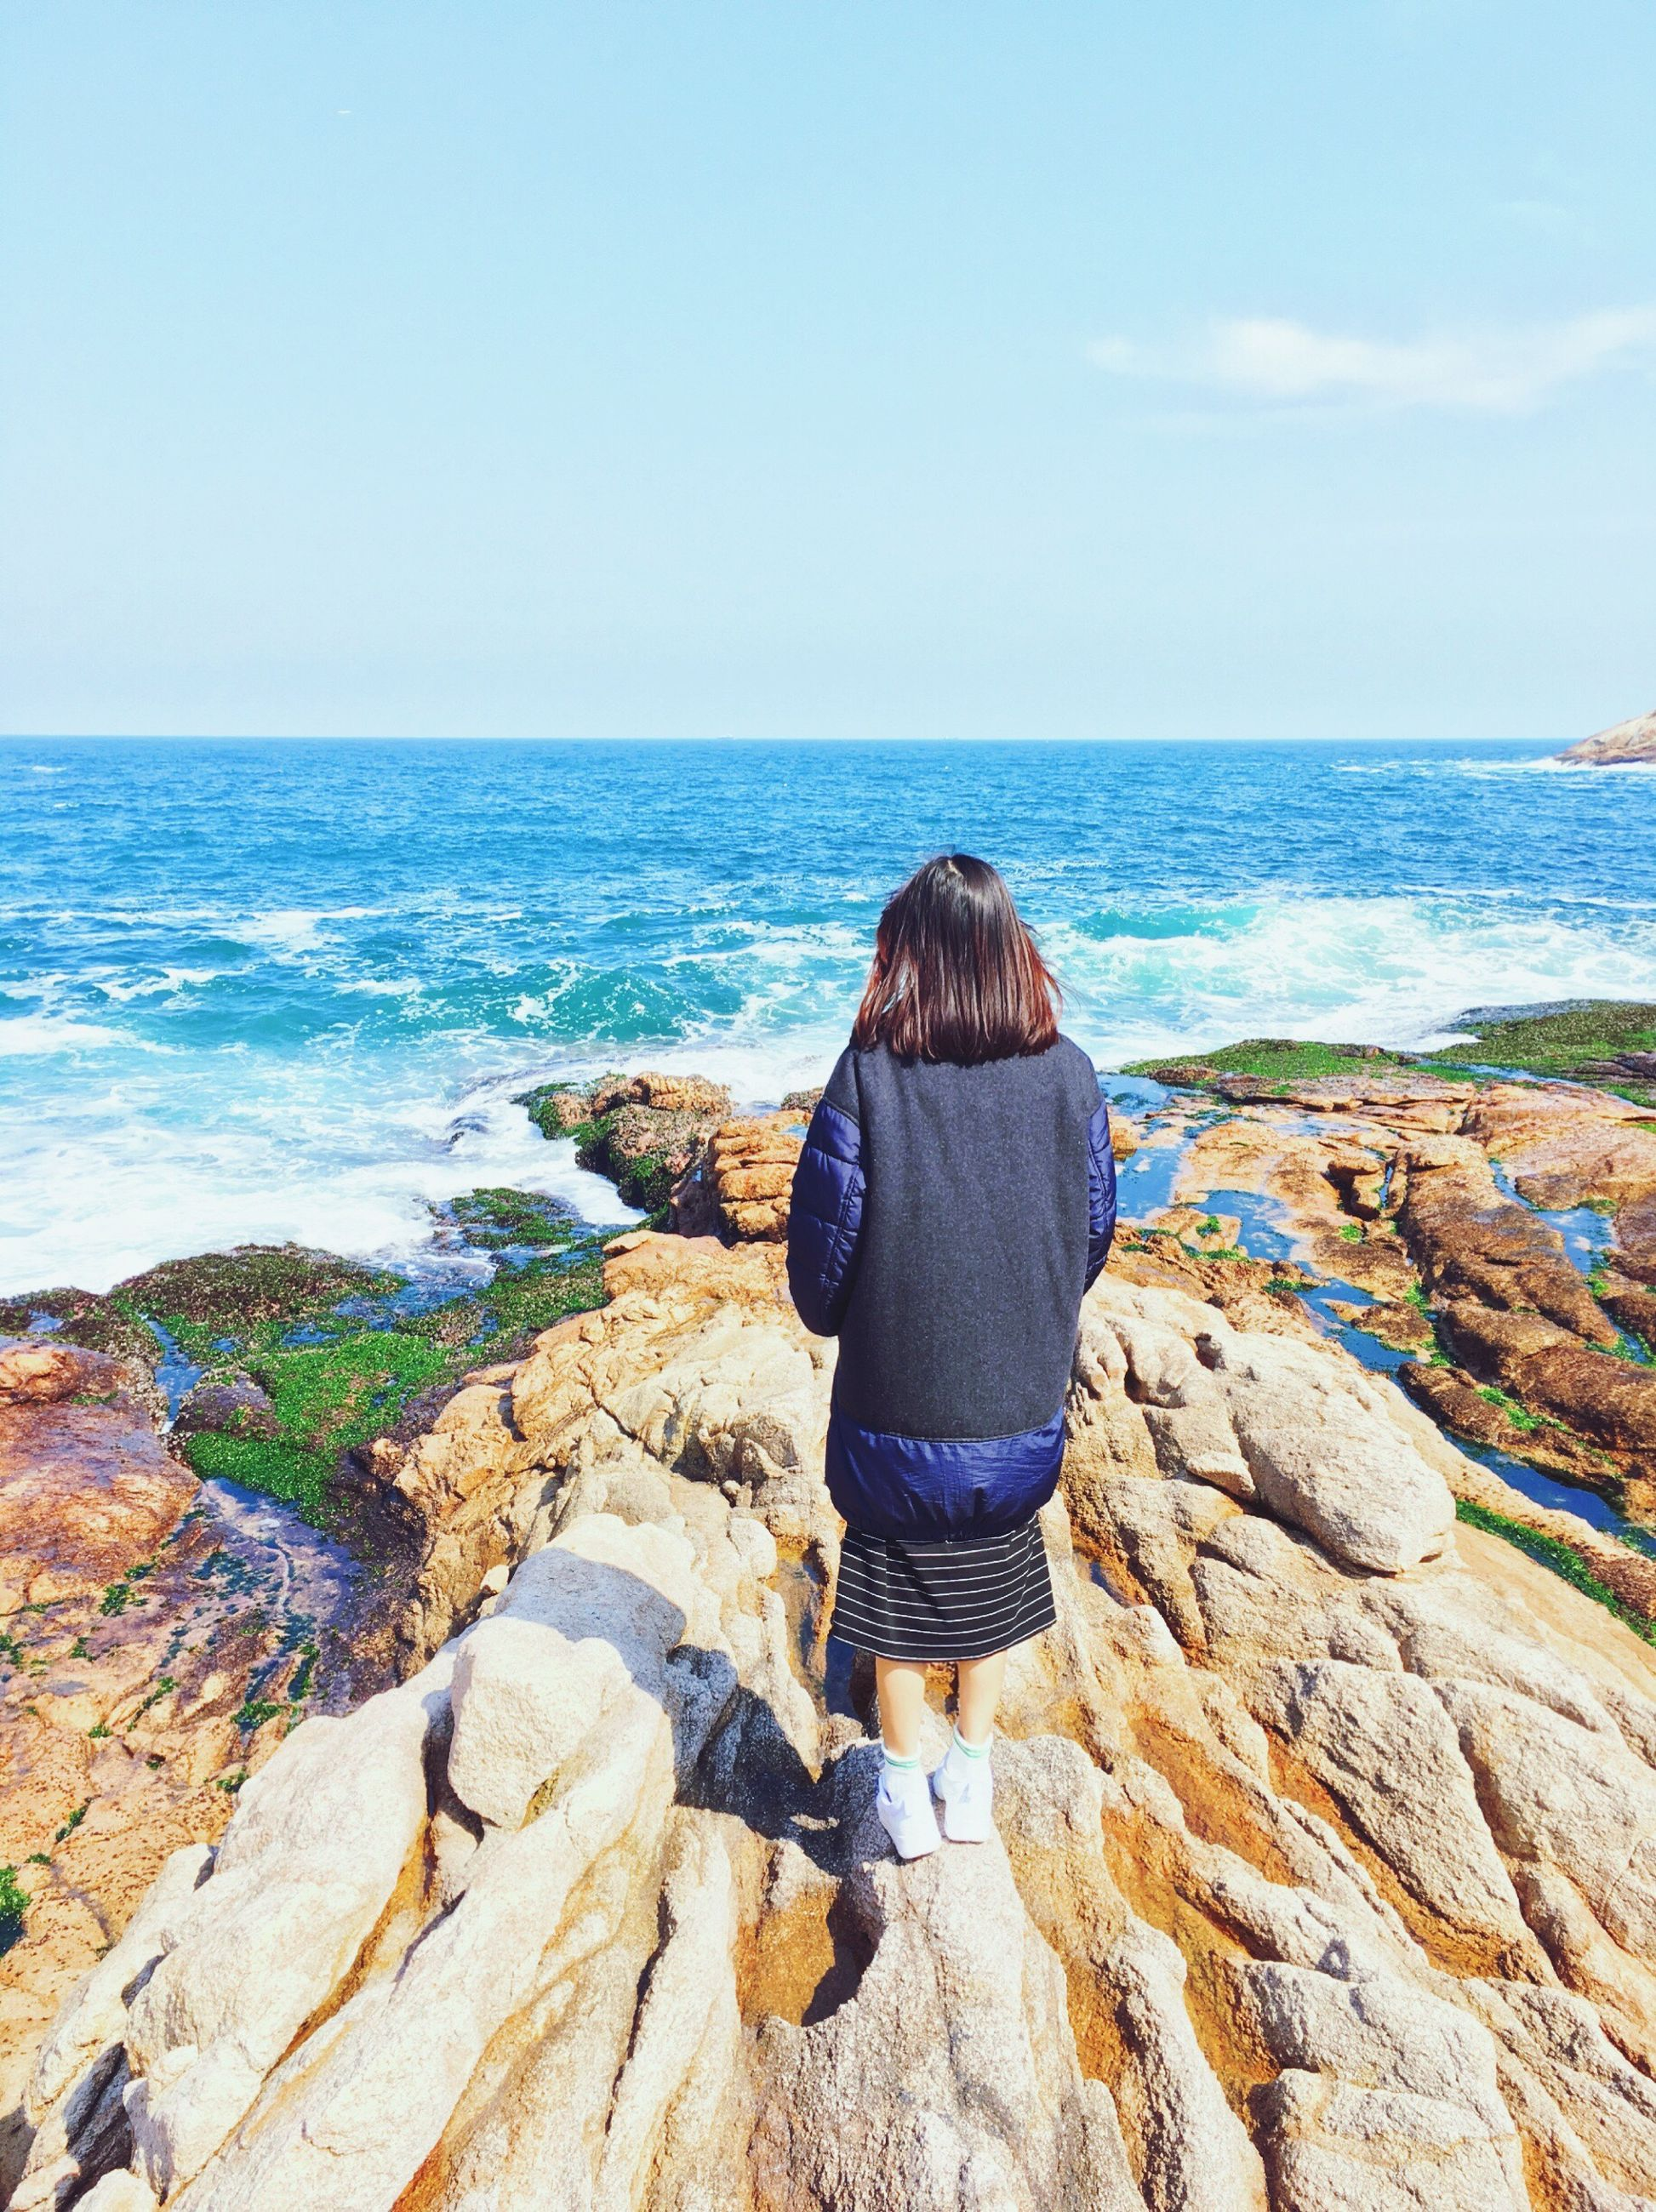 sea, horizon over water, rear view, lifestyles, water, leisure activity, standing, full length, beauty in nature, scenics, rock - object, tranquility, beach, tranquil scene, nature, casual clothing, sky, shore